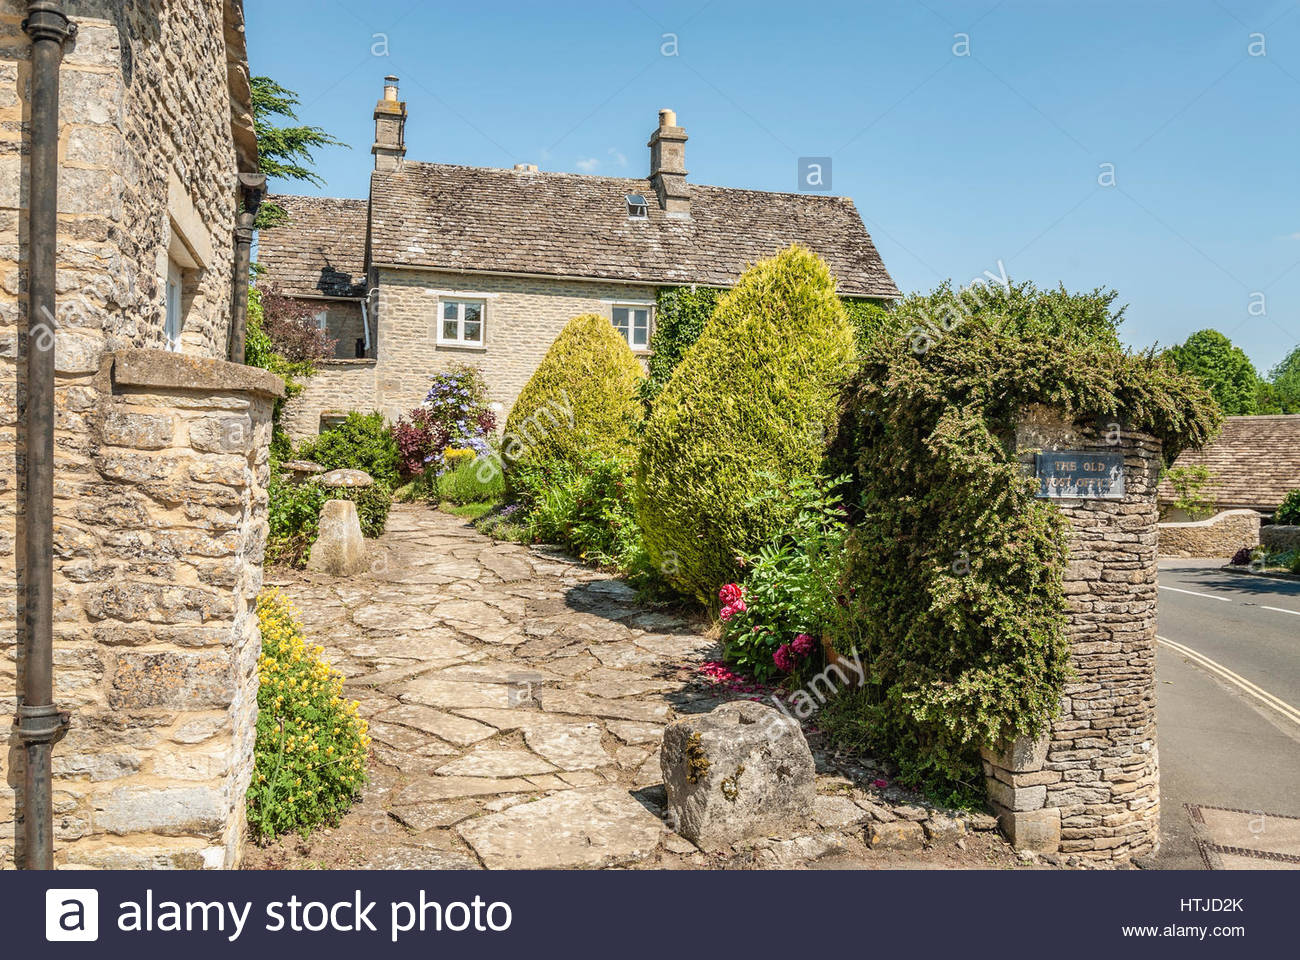 Traditional Weaver Cotswolds-Cottages in Bibury near Cirencester, South East England.| Traditionelle Cotswolds-Häuser - Stock Image